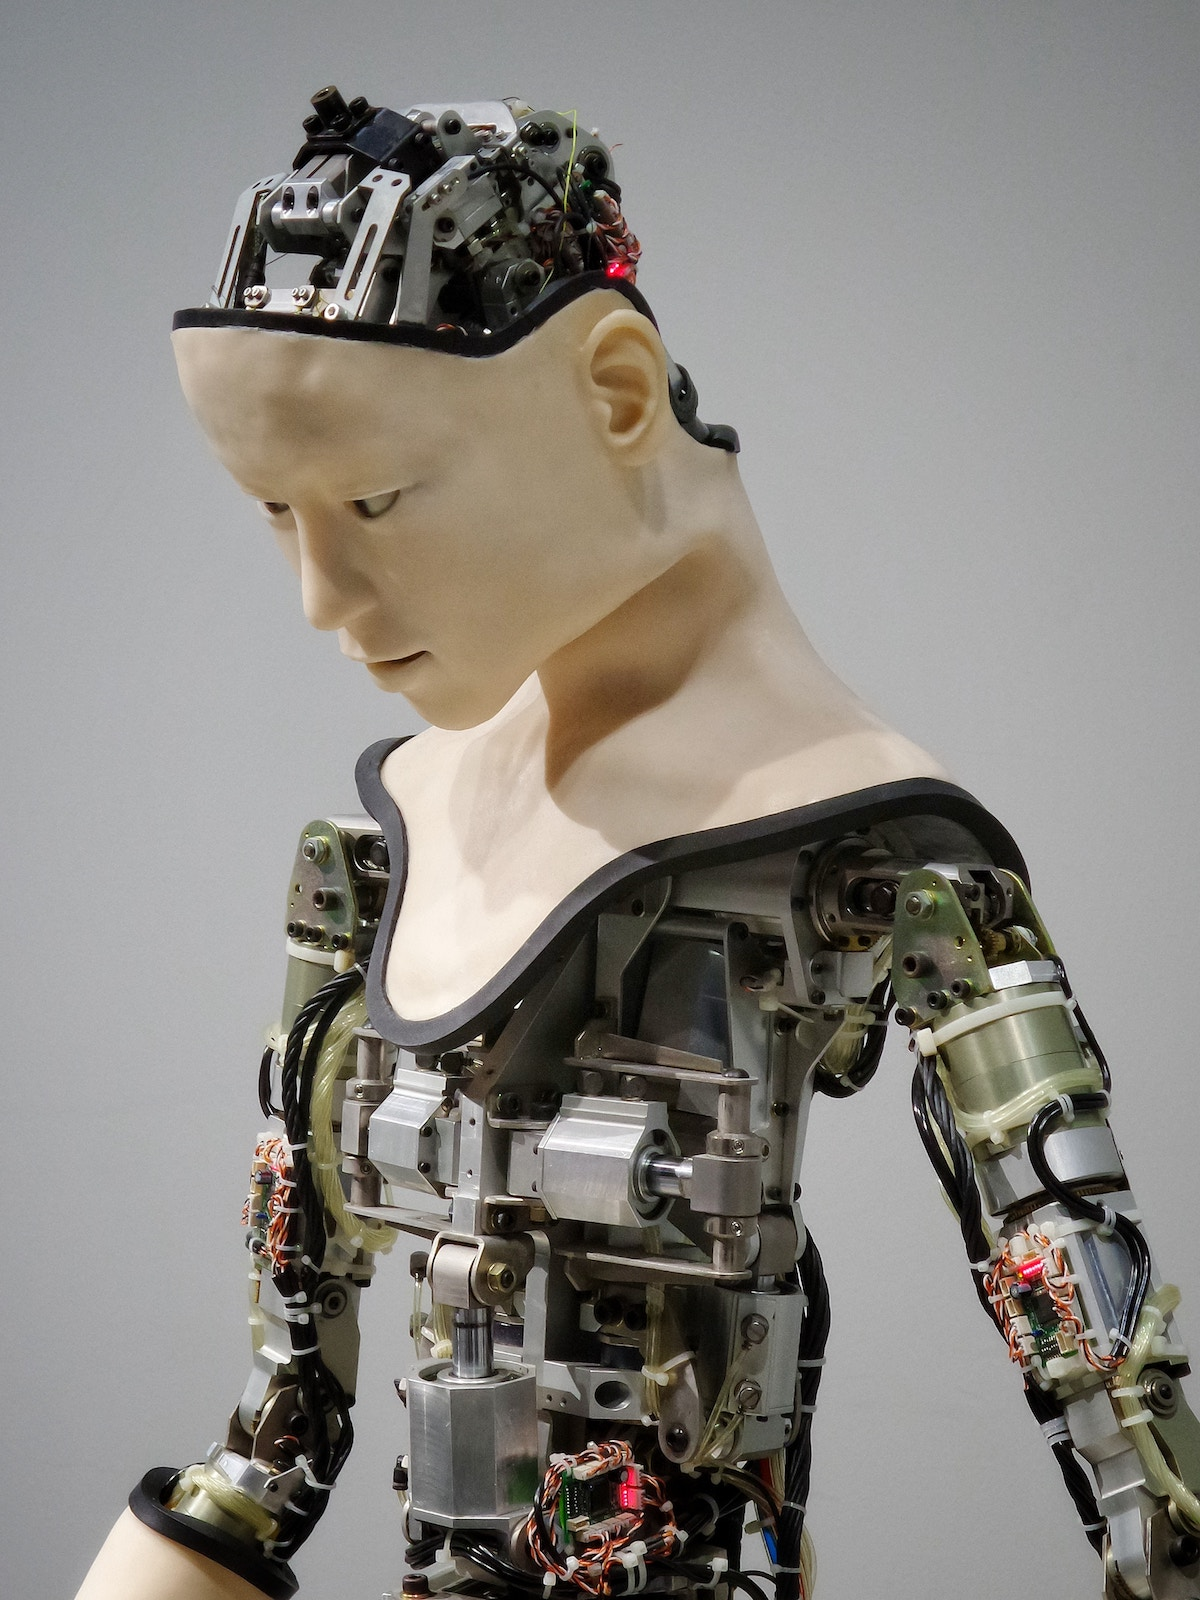 Are robots going to replace doctors?